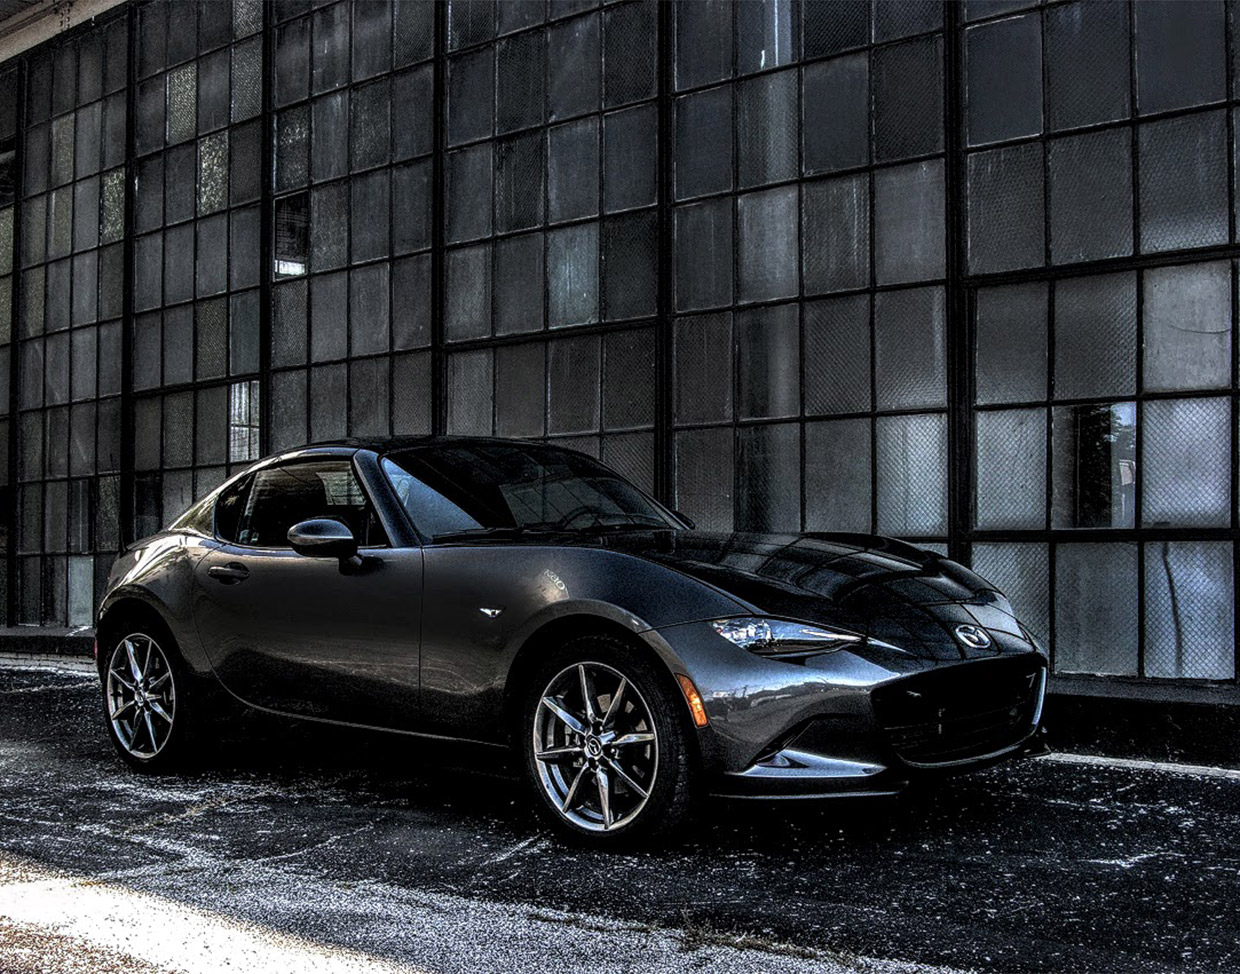 2019 mazda mx 5 power bump details come into focus 95 octane. Black Bedroom Furniture Sets. Home Design Ideas